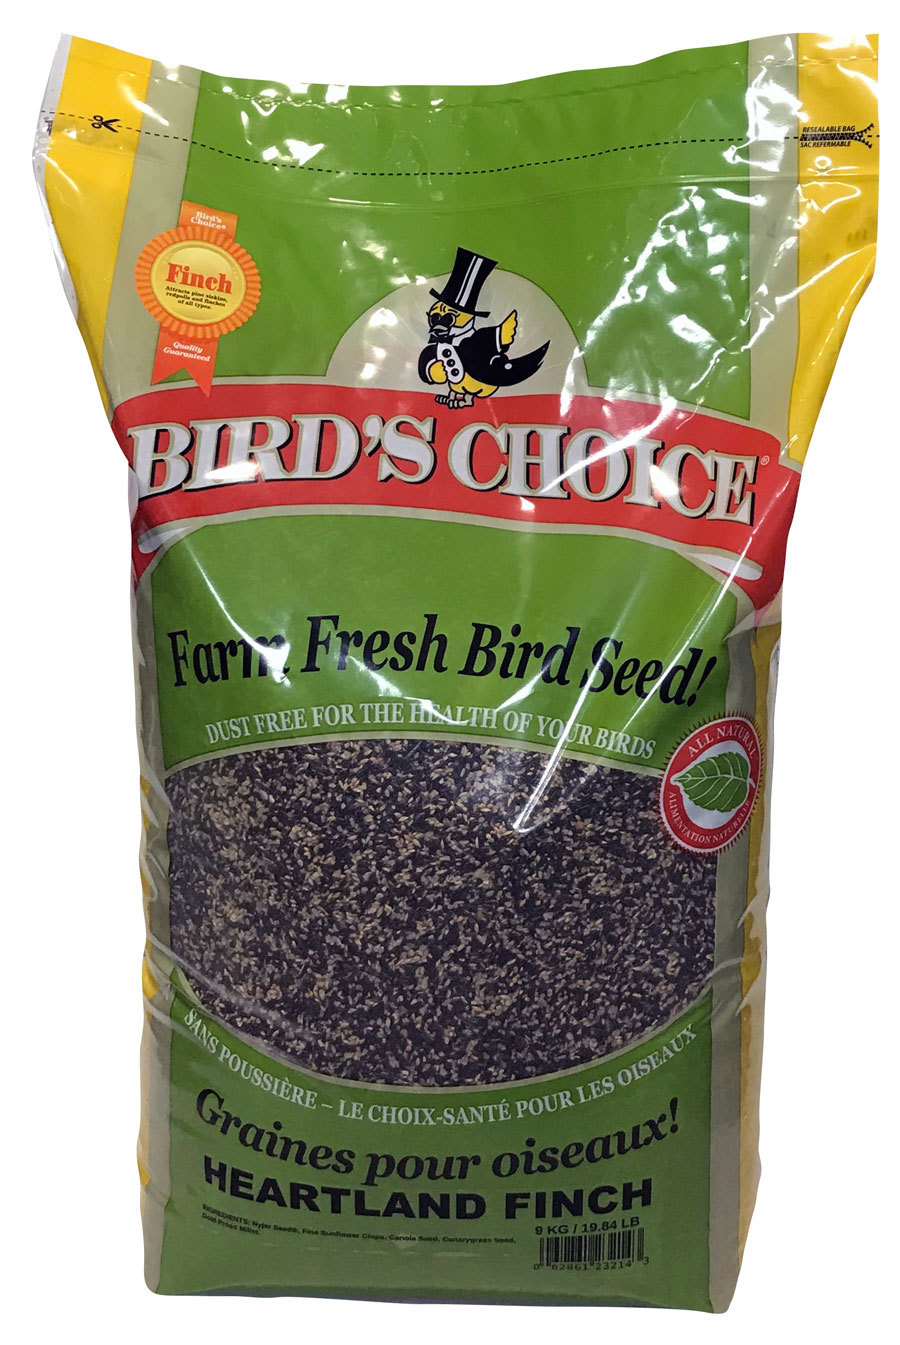 Bird's Choice® Heartland Finch Mix